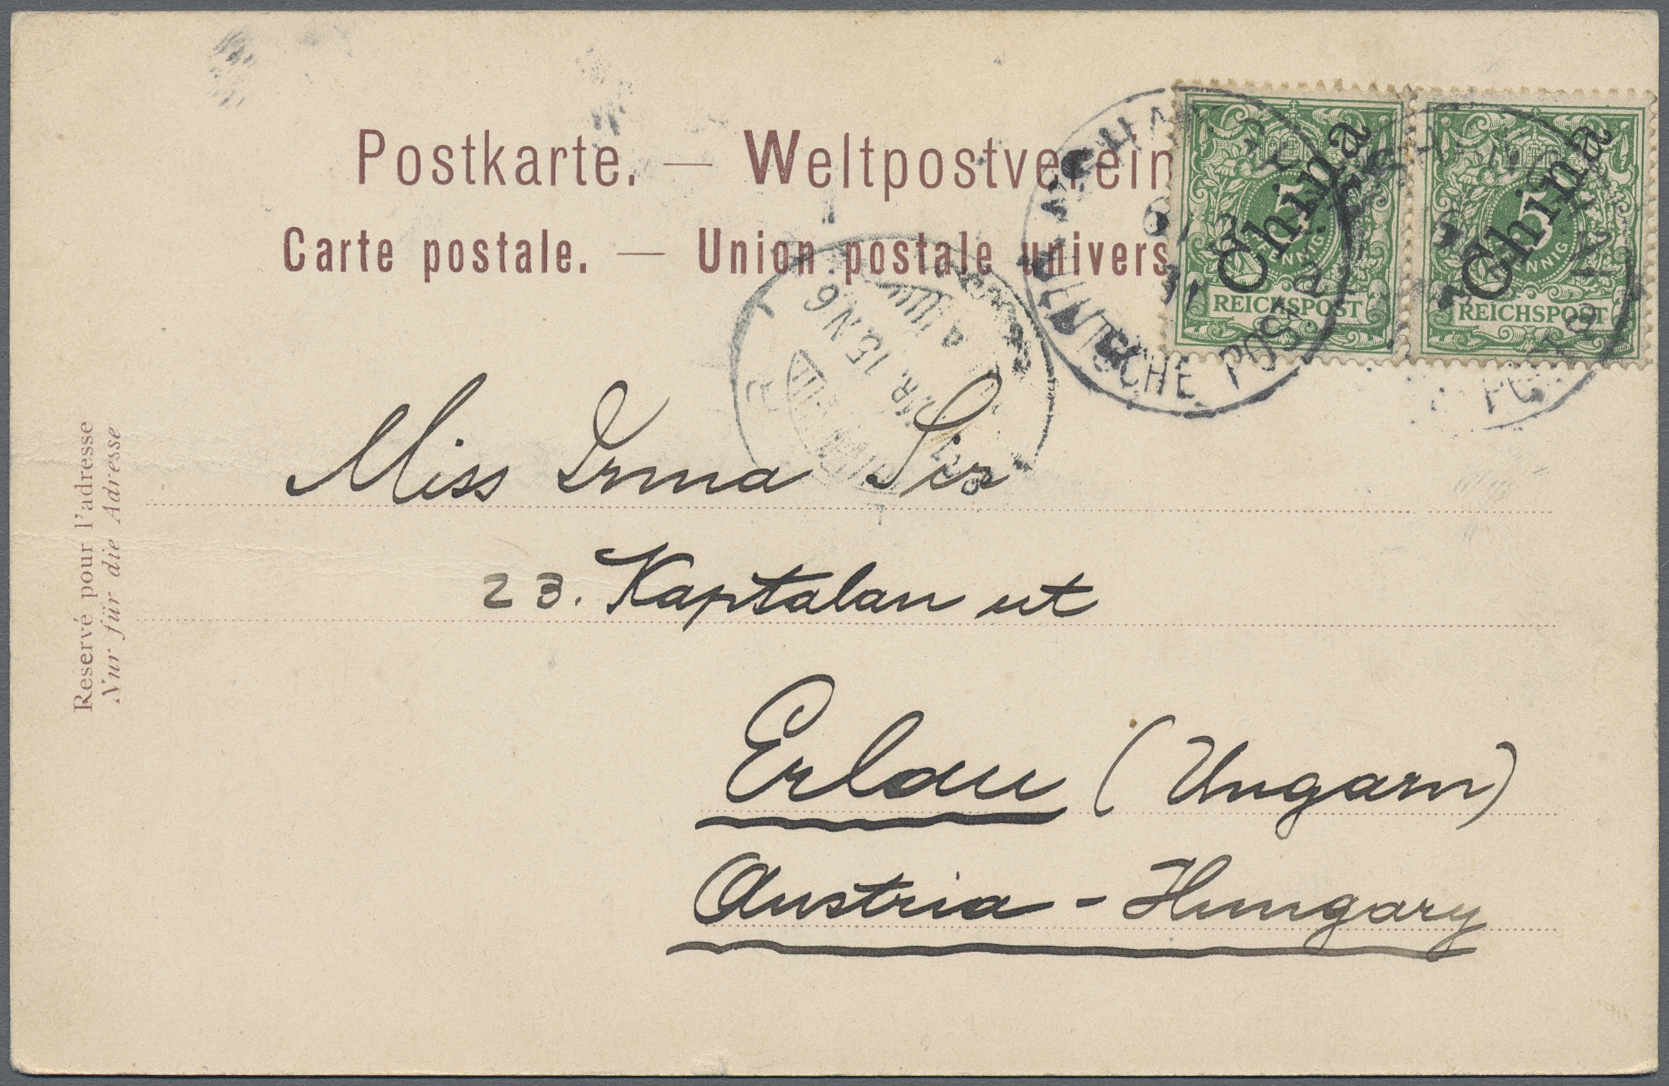 Lot 24477 - China - Fremde Postanstalten / Foreign Offices  -  Auktionshaus Christoph Gärtner GmbH & Co. KG Sale #45Collections Worldwide